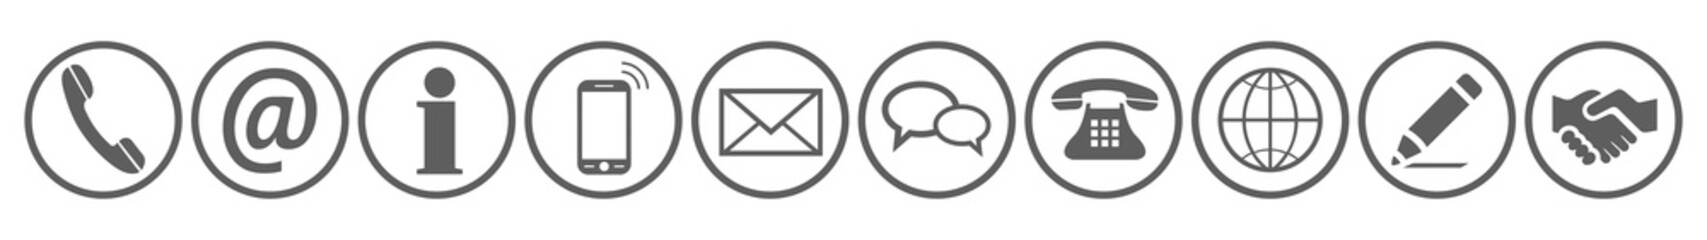 Set contact icons sign - vector